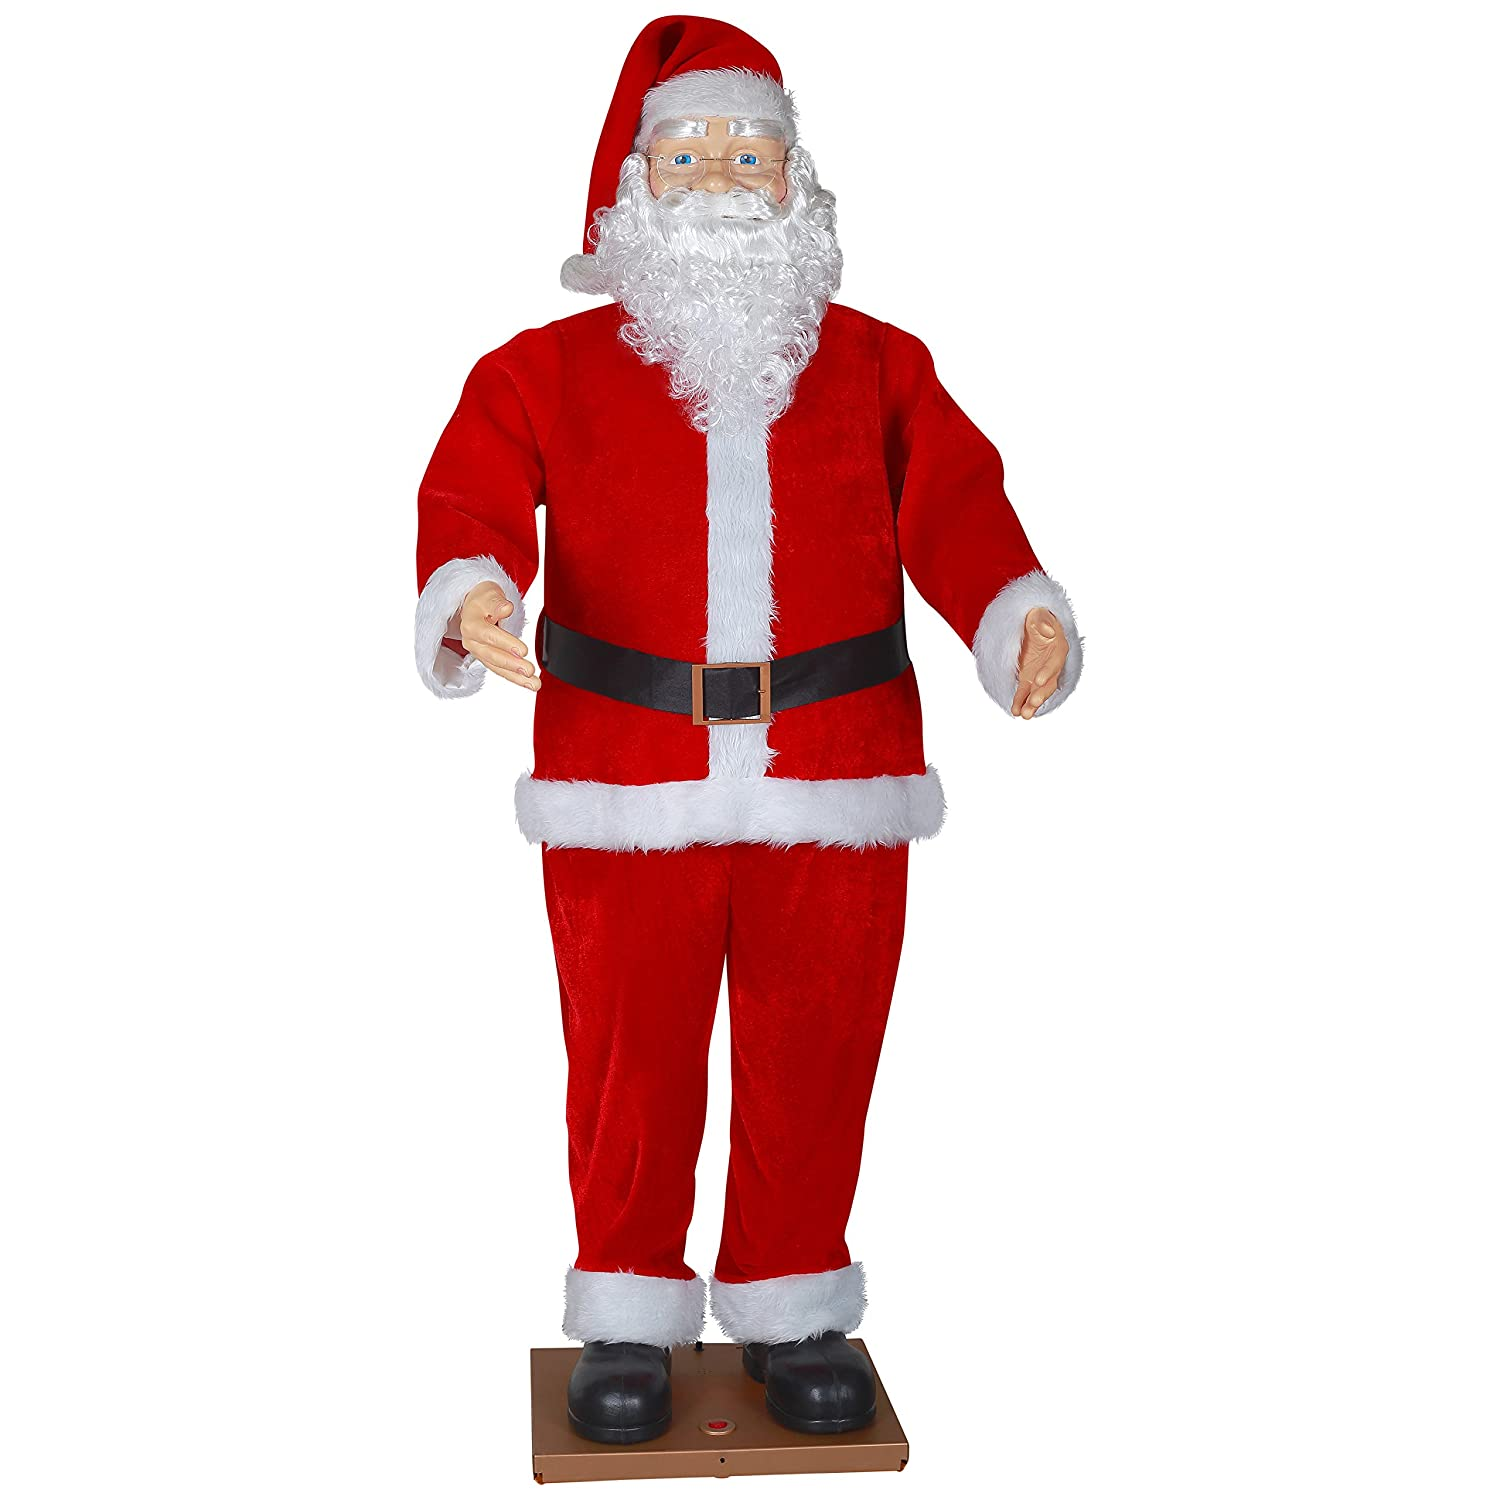 Amazon.com: 6\' Life Size Animated Dancing Santa with Realistic Face ...